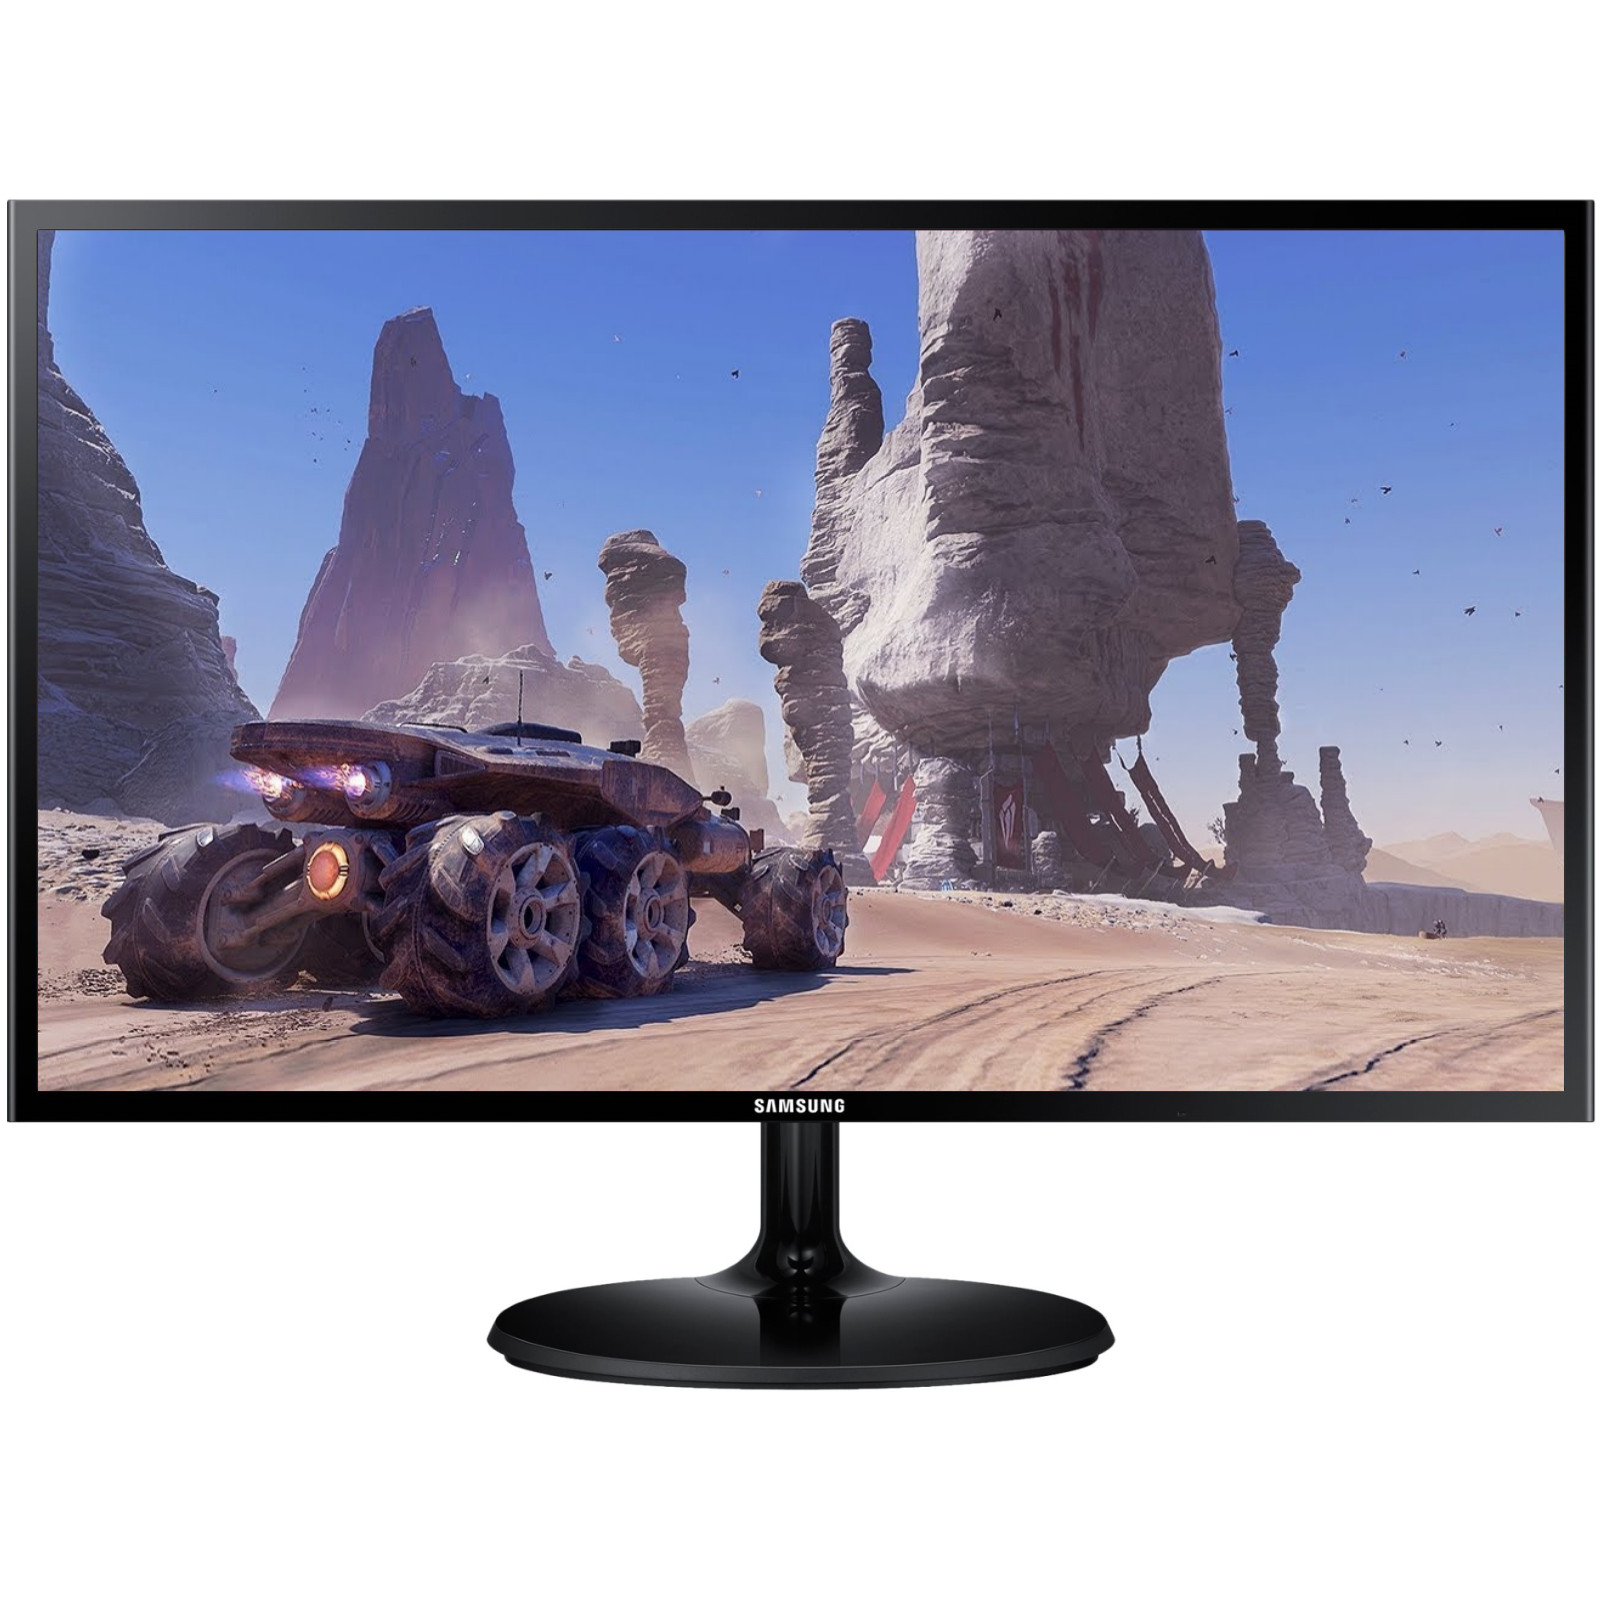 "Samsung S24F350F 24"" LED Monitor, 1920x1080, 4ms, 75x75mm VESA, HDMI+VGA,"